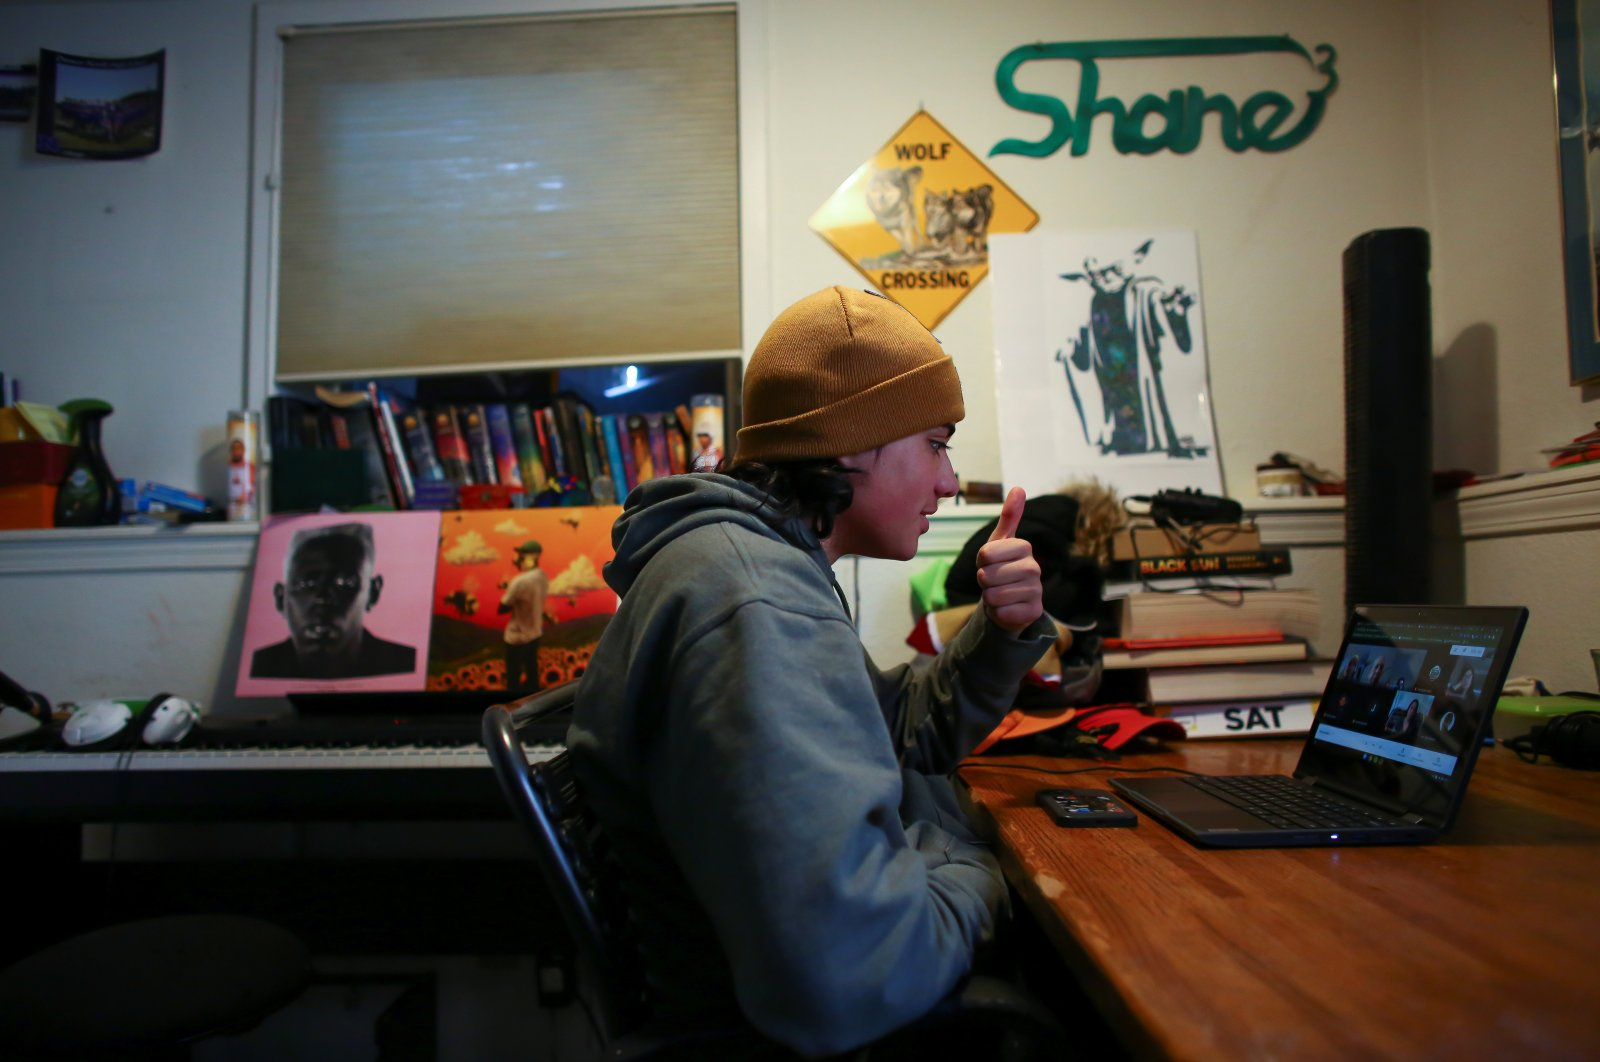 High school senior, Shane Wolf, 18, attends an online class in which Native American students meet regularly with a Lakota elder, Sid Whiting, in Denver, Colorado, U.S., March 19, 2021. (Reuters File Photo)